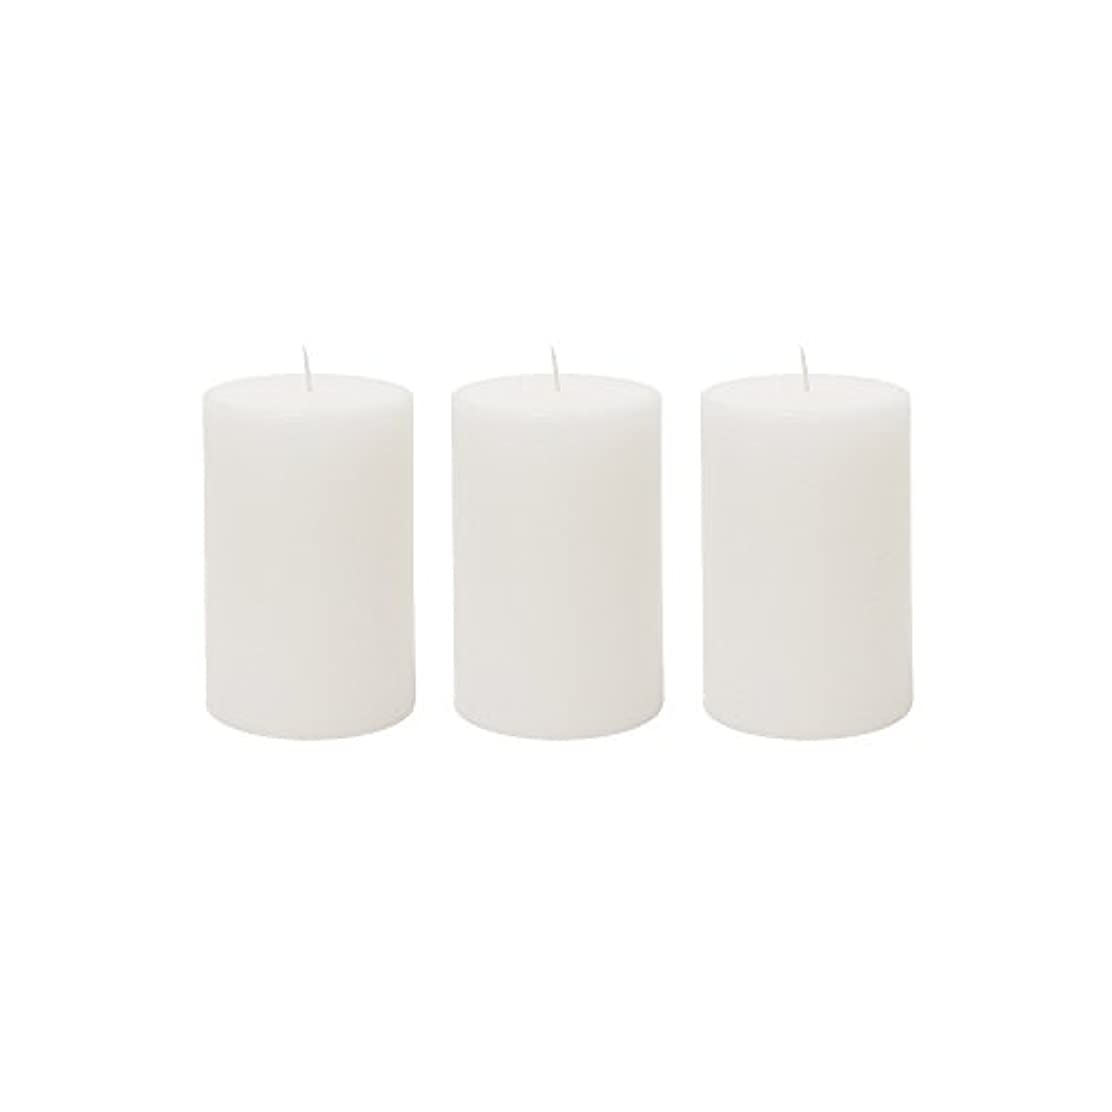 水差しバルコニー世界記録のギネスブック(3, 5.1cm x 7.6cm Round) - Mega Candles 3 pcs Unscented White Round Pillar Candle Hand Poured Premium Wax Candles...